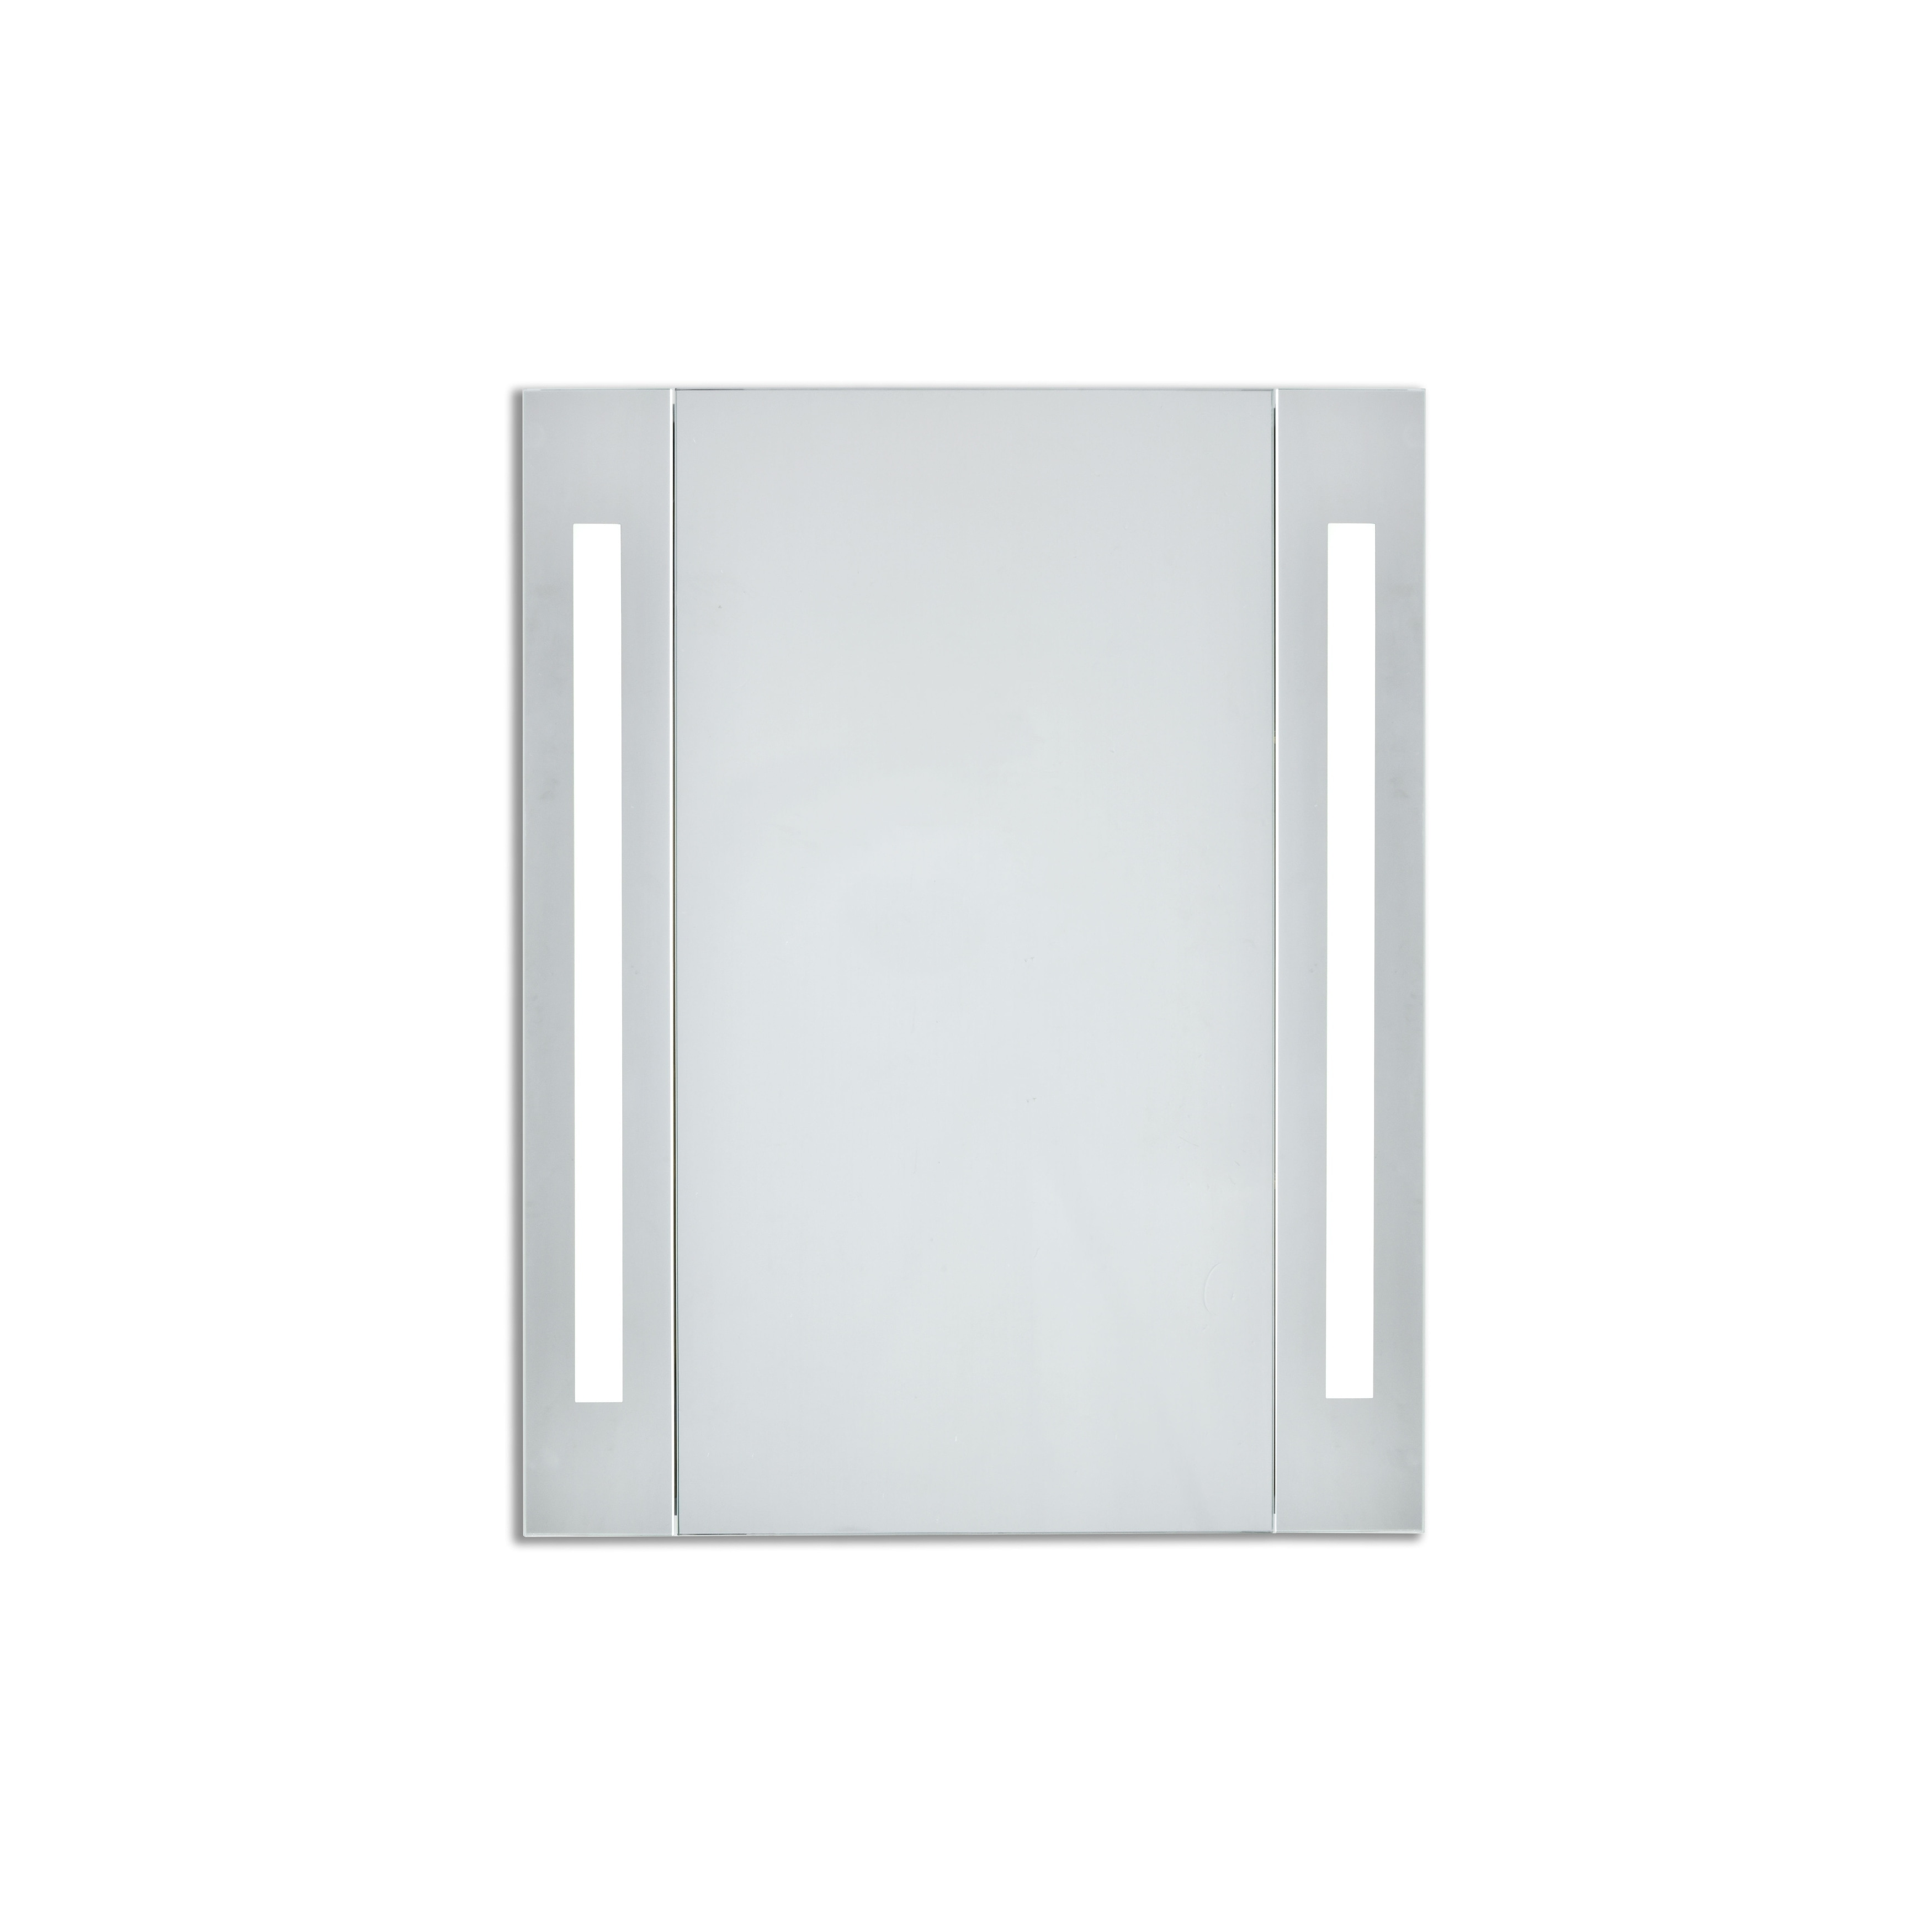 Buy Lighted Mirrors Online at Overstock.com | Our Best Decorative ...